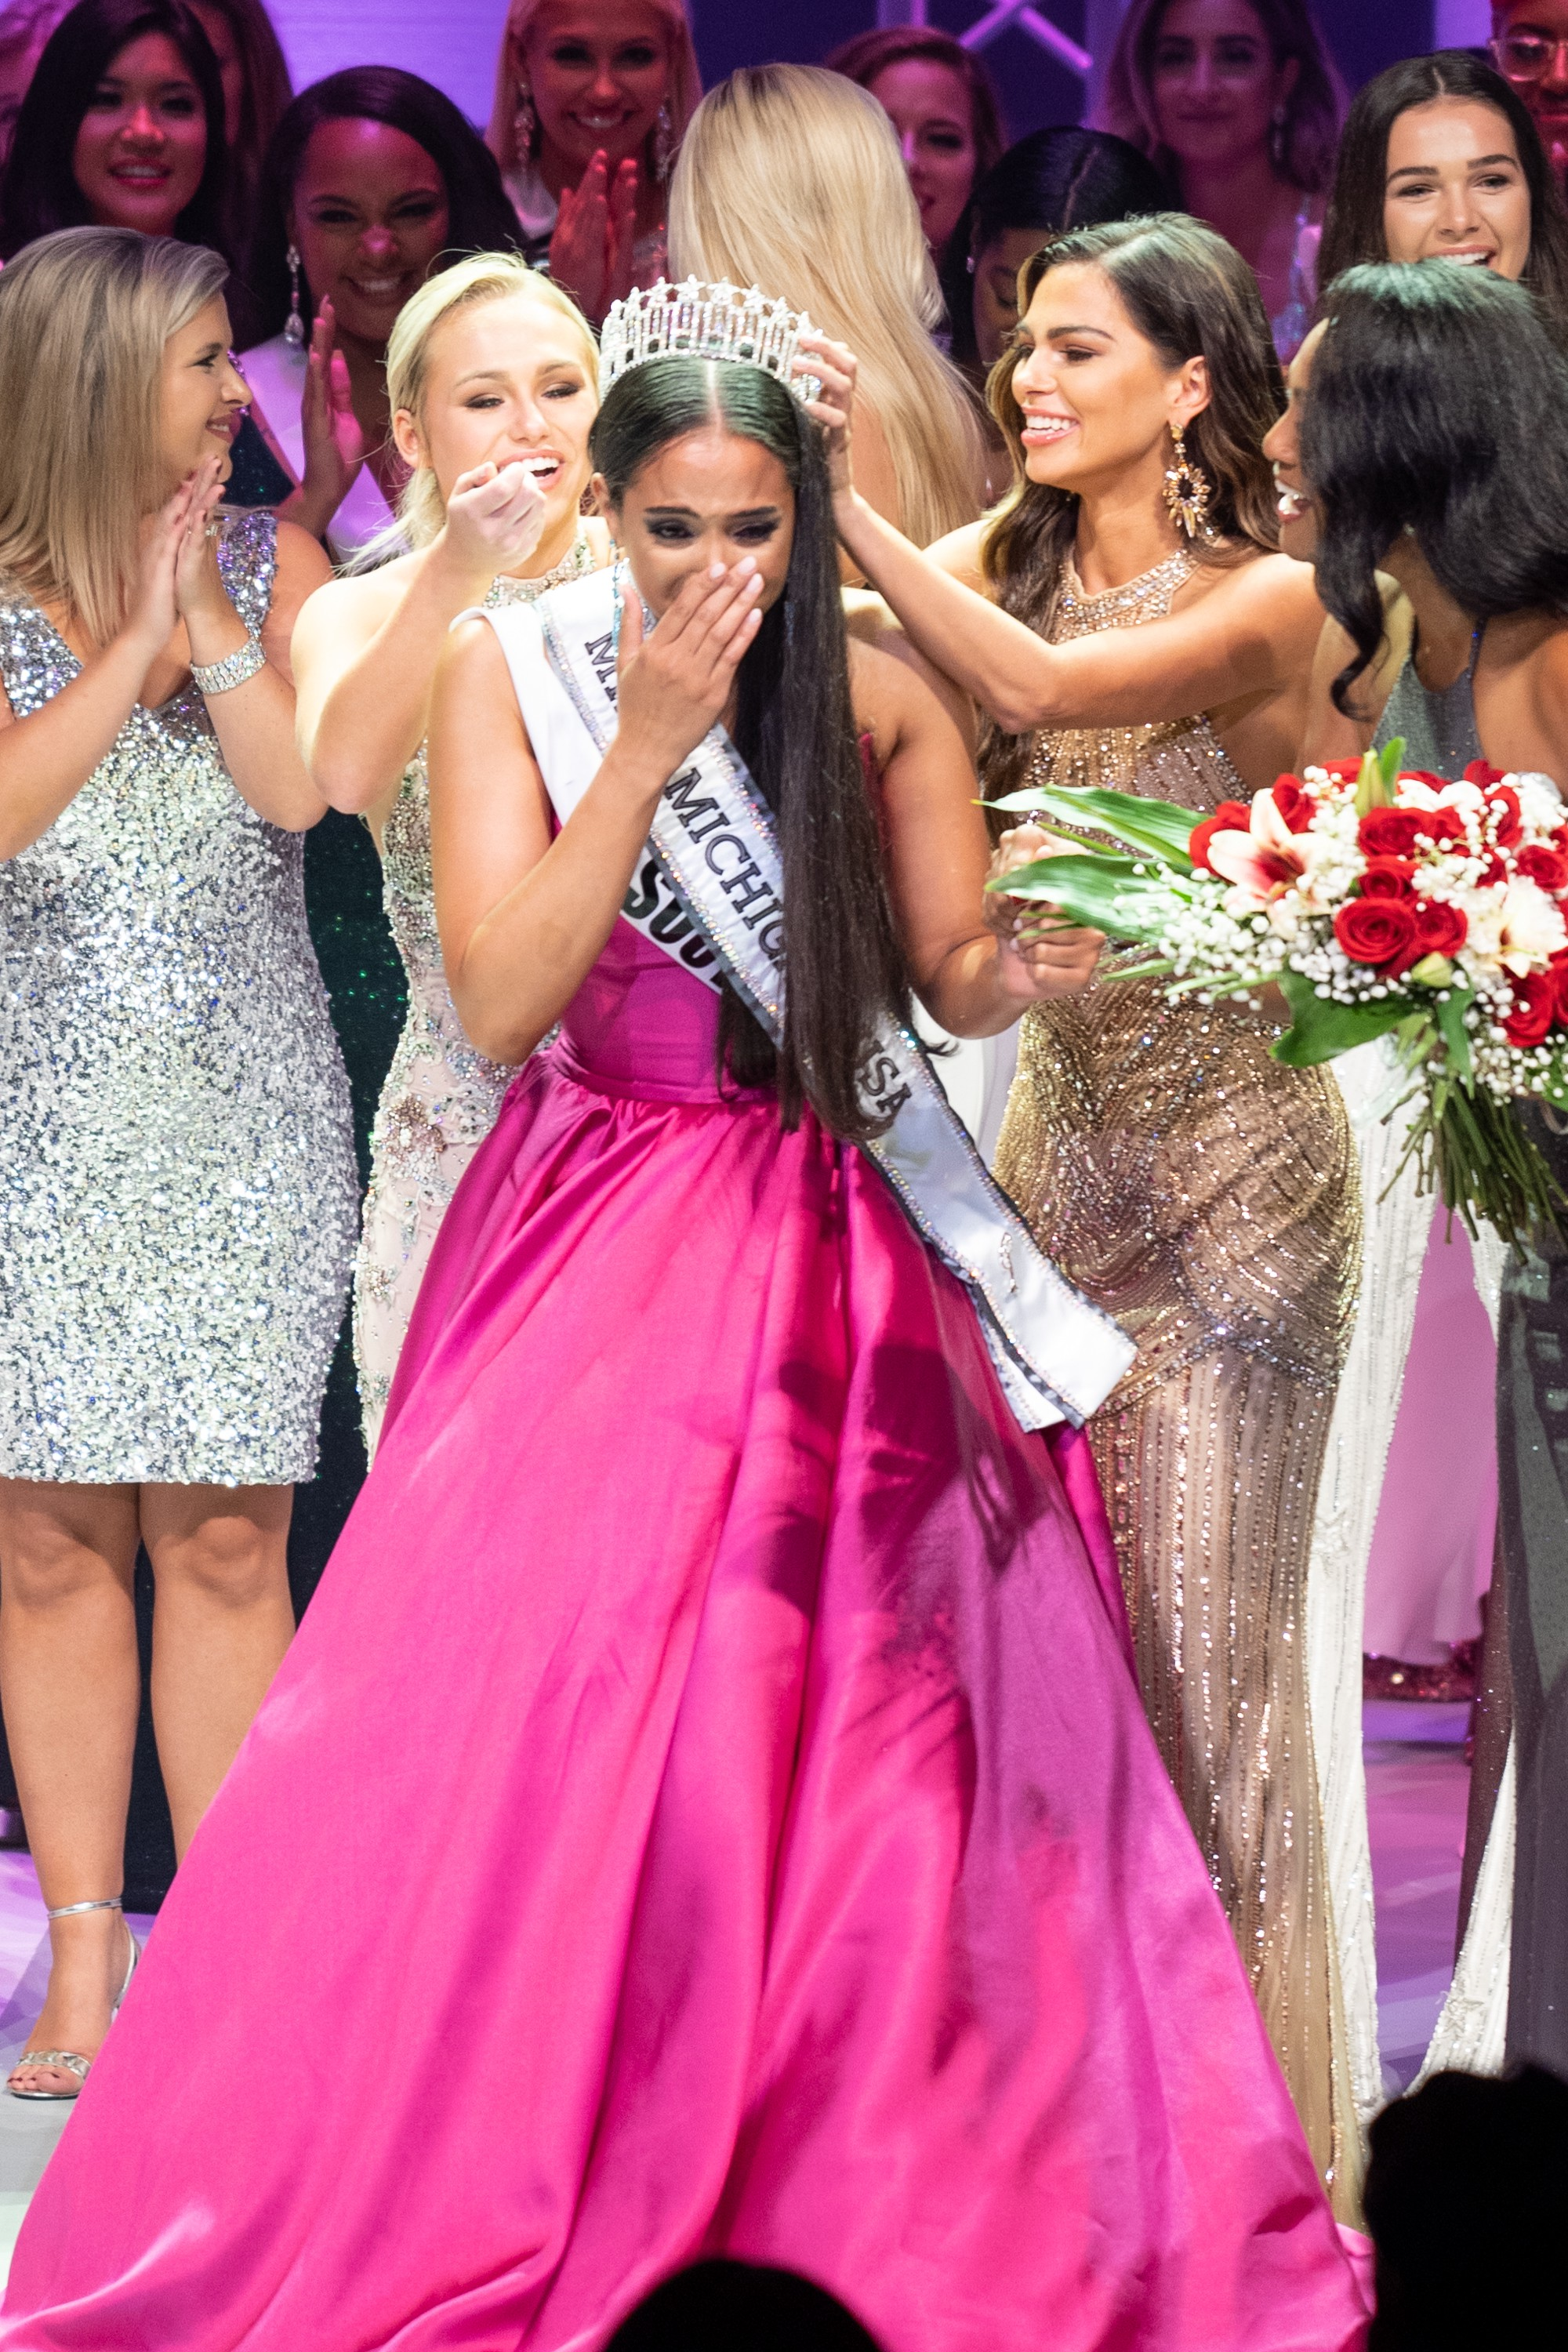 oakland county field agent named miss michigan usa by mi dept of corrections medium oakland county field agent named miss